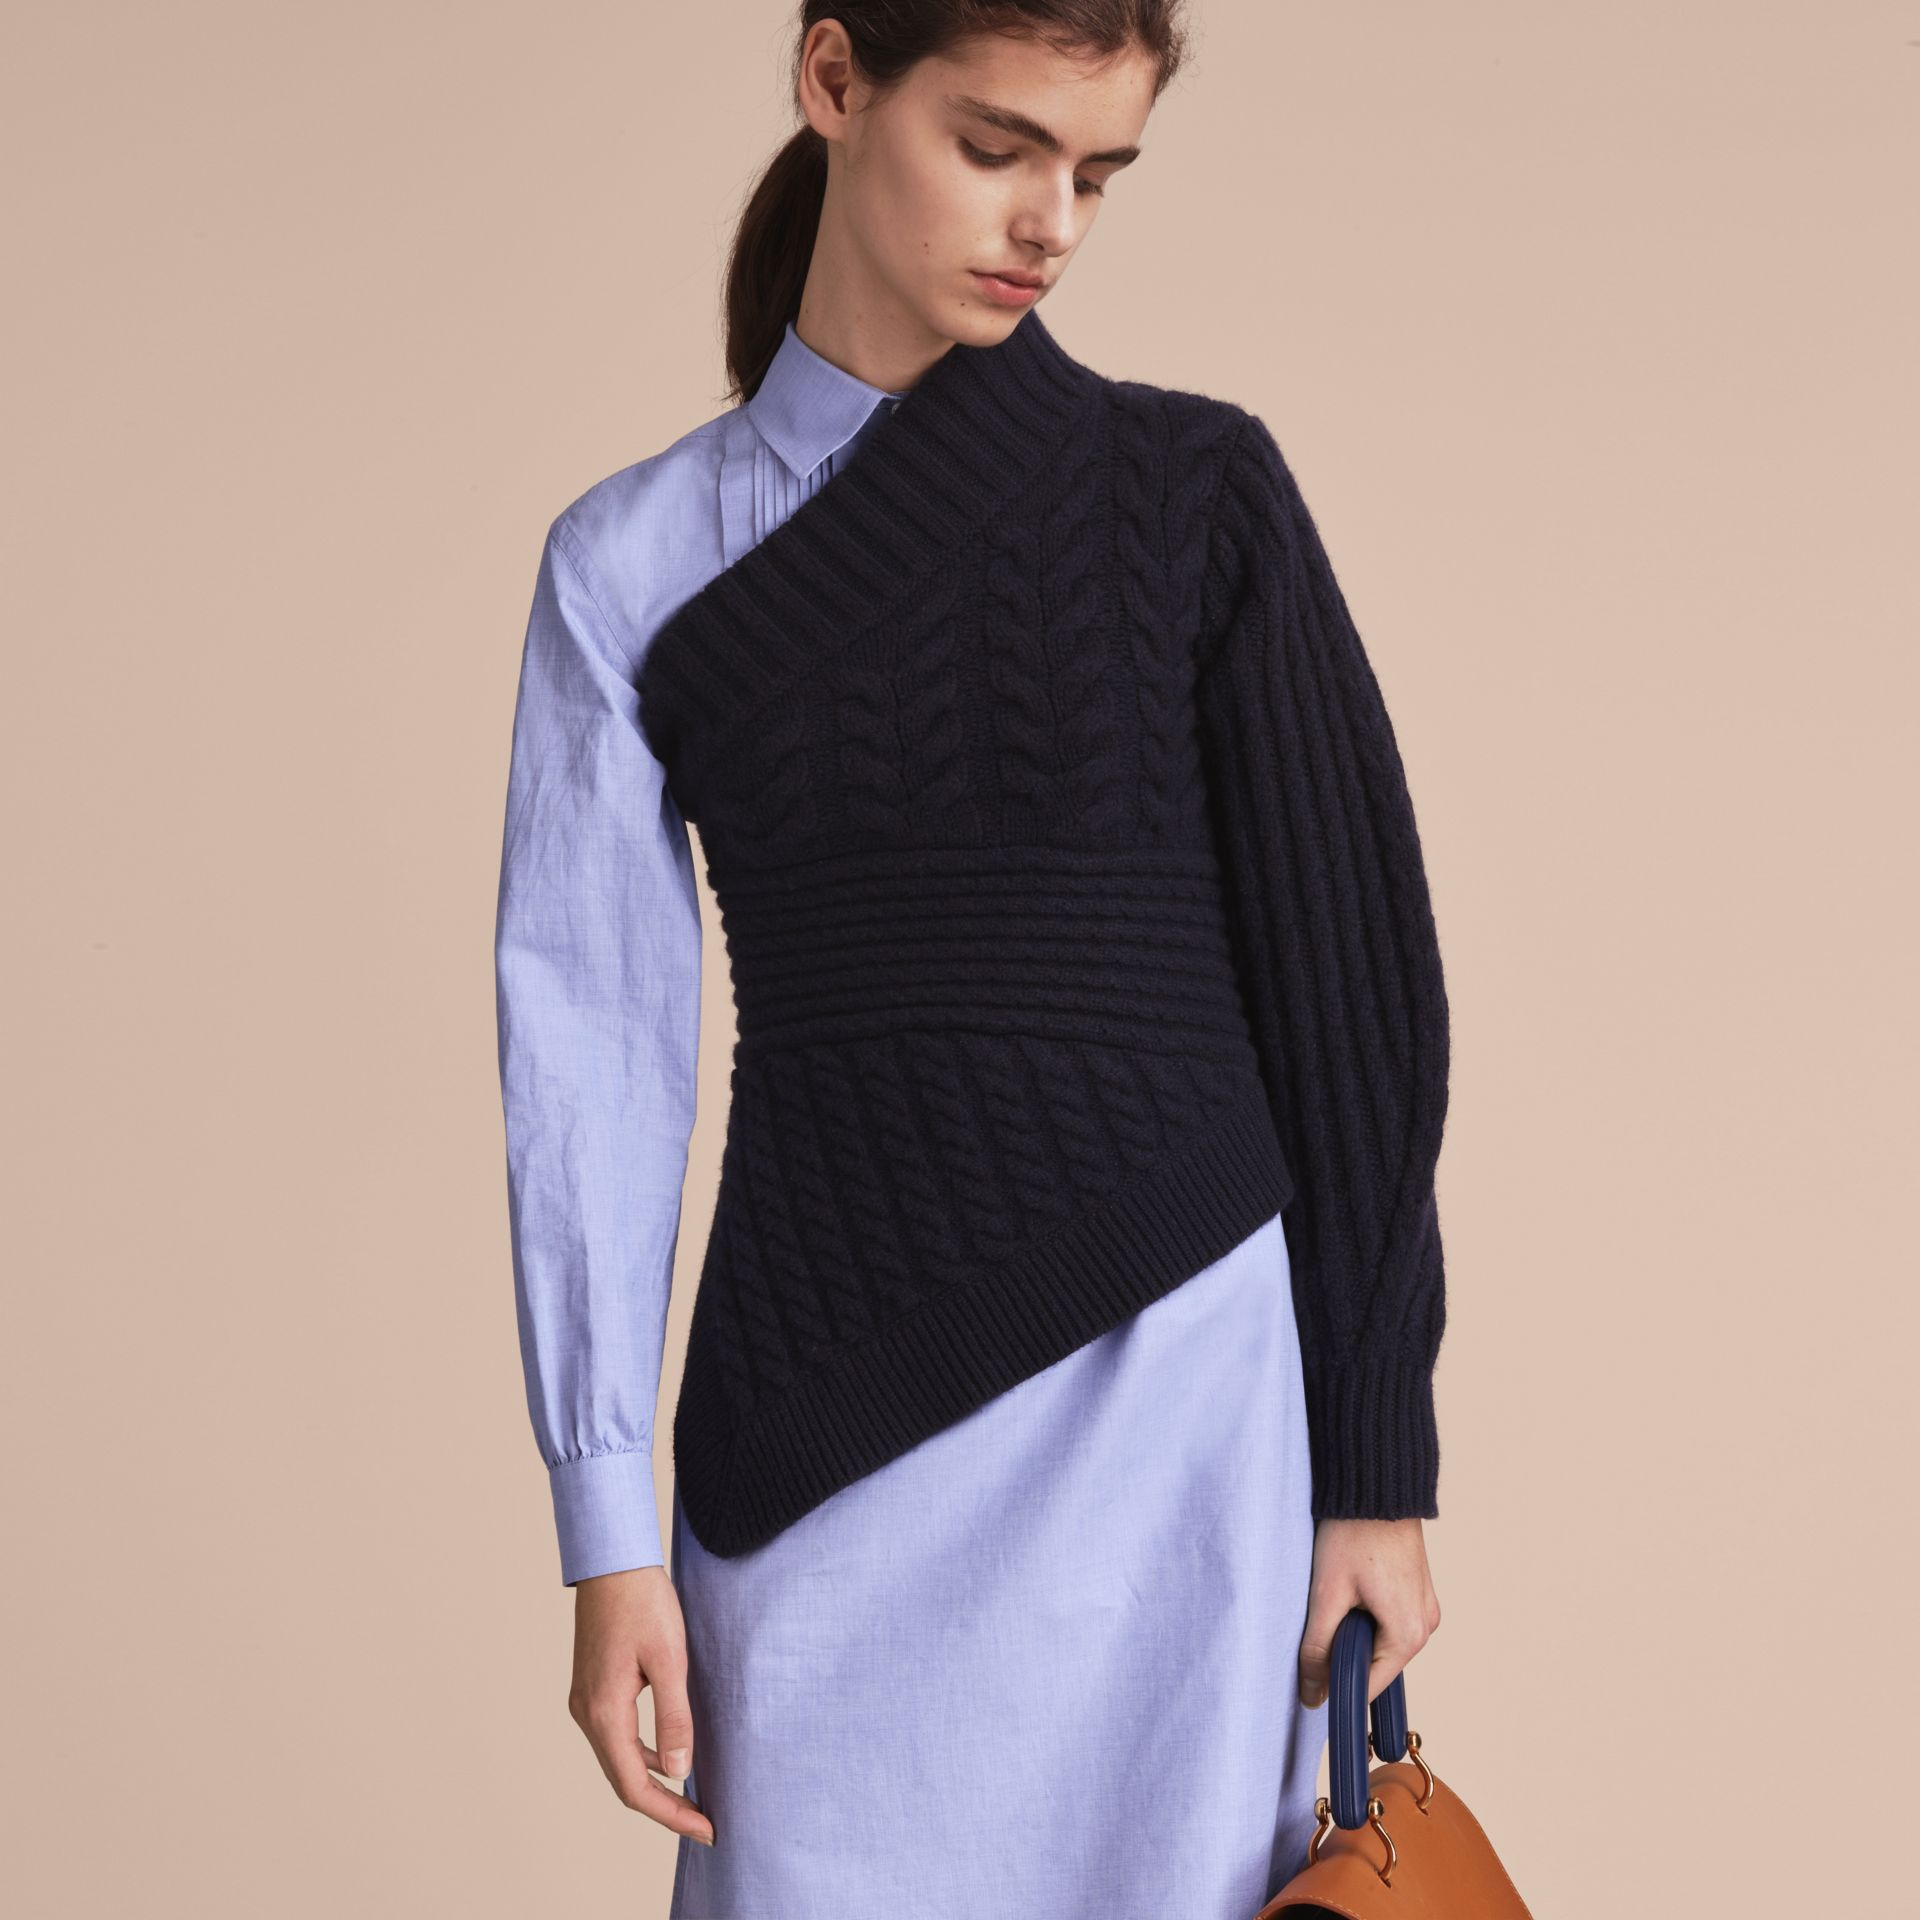 One-shoulder Cable Knit Cashmere Sweater in Navy - Women | Burberry - gallery image 6